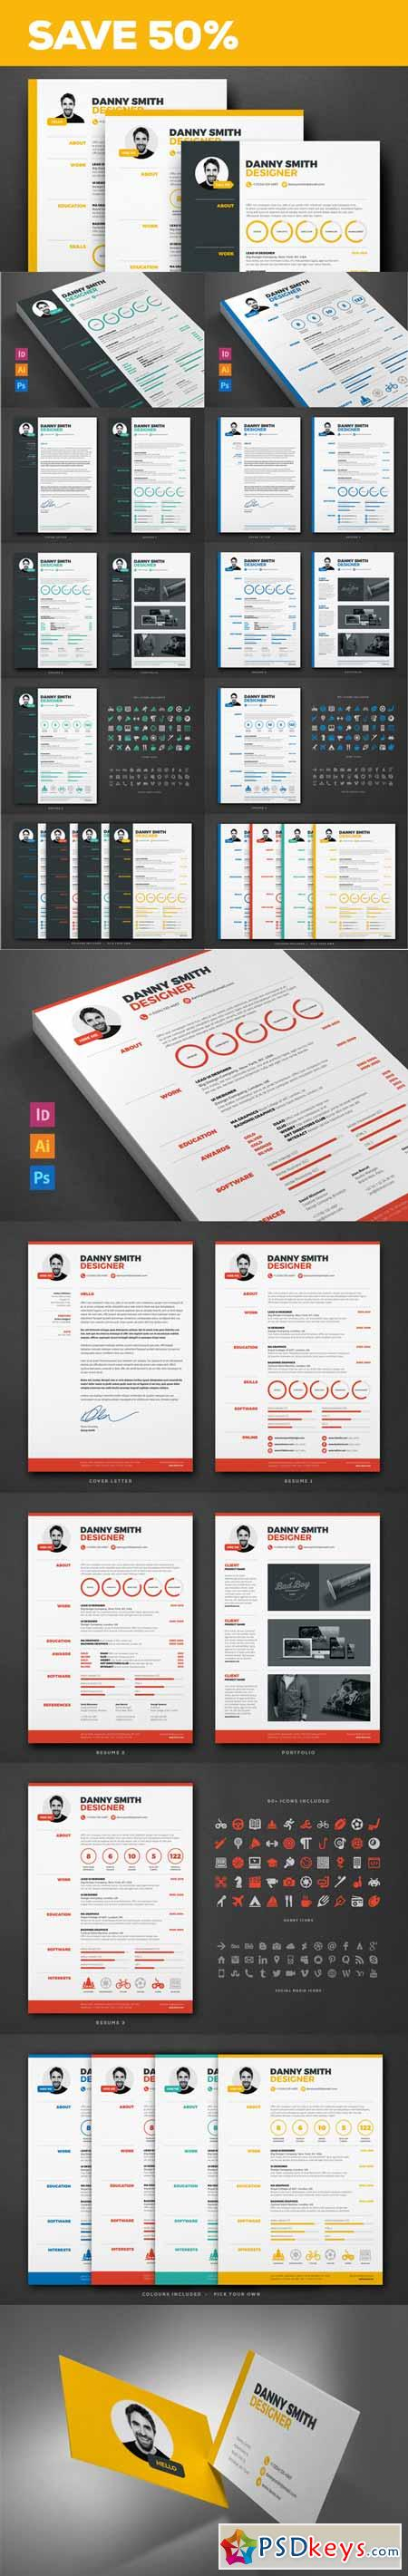 Resume Bundle Save 50% 159799